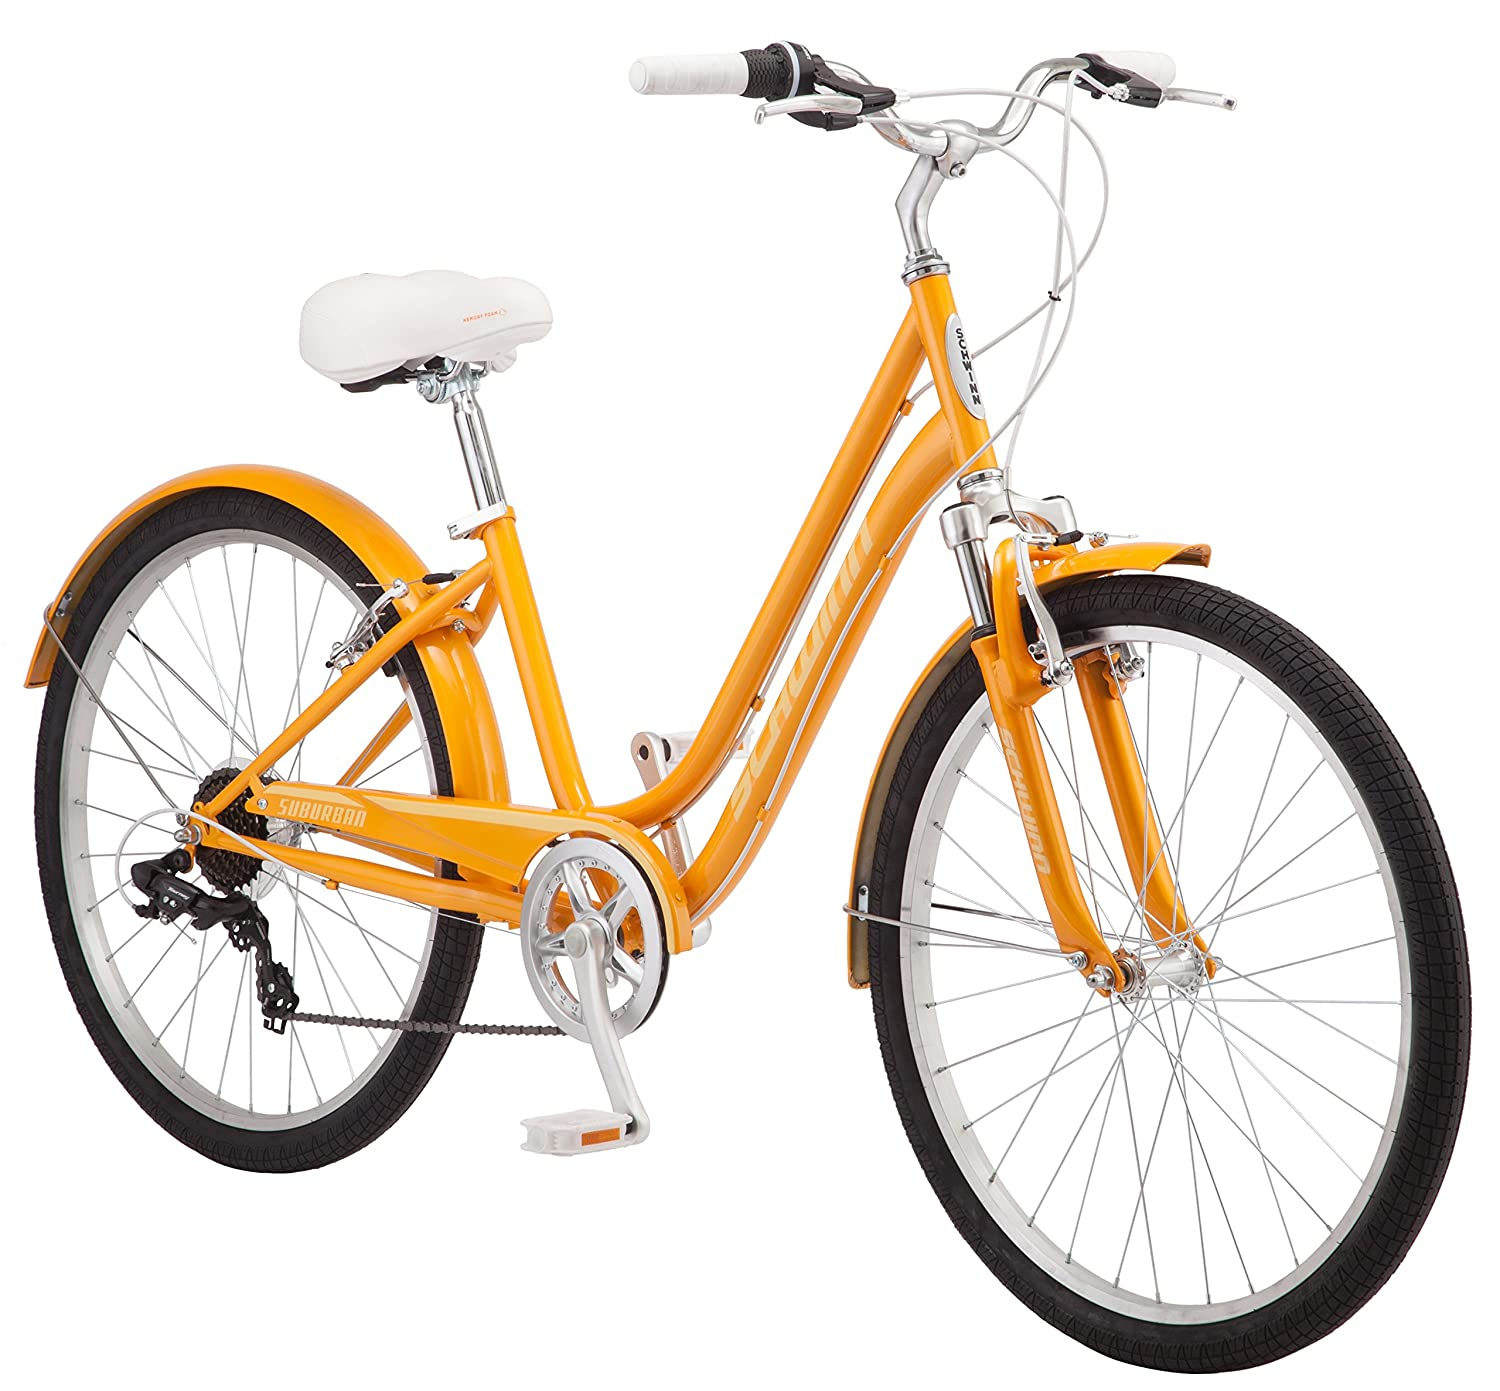 32f66163ecc Amazon.com : Schwinn Suburban Comfort Hybrid Bike, Featuring Low  Step-Through Steel Frame and 7-Speed Drivetrain with 26-Inch Wheels,  Small/16-Inch Frame, ...